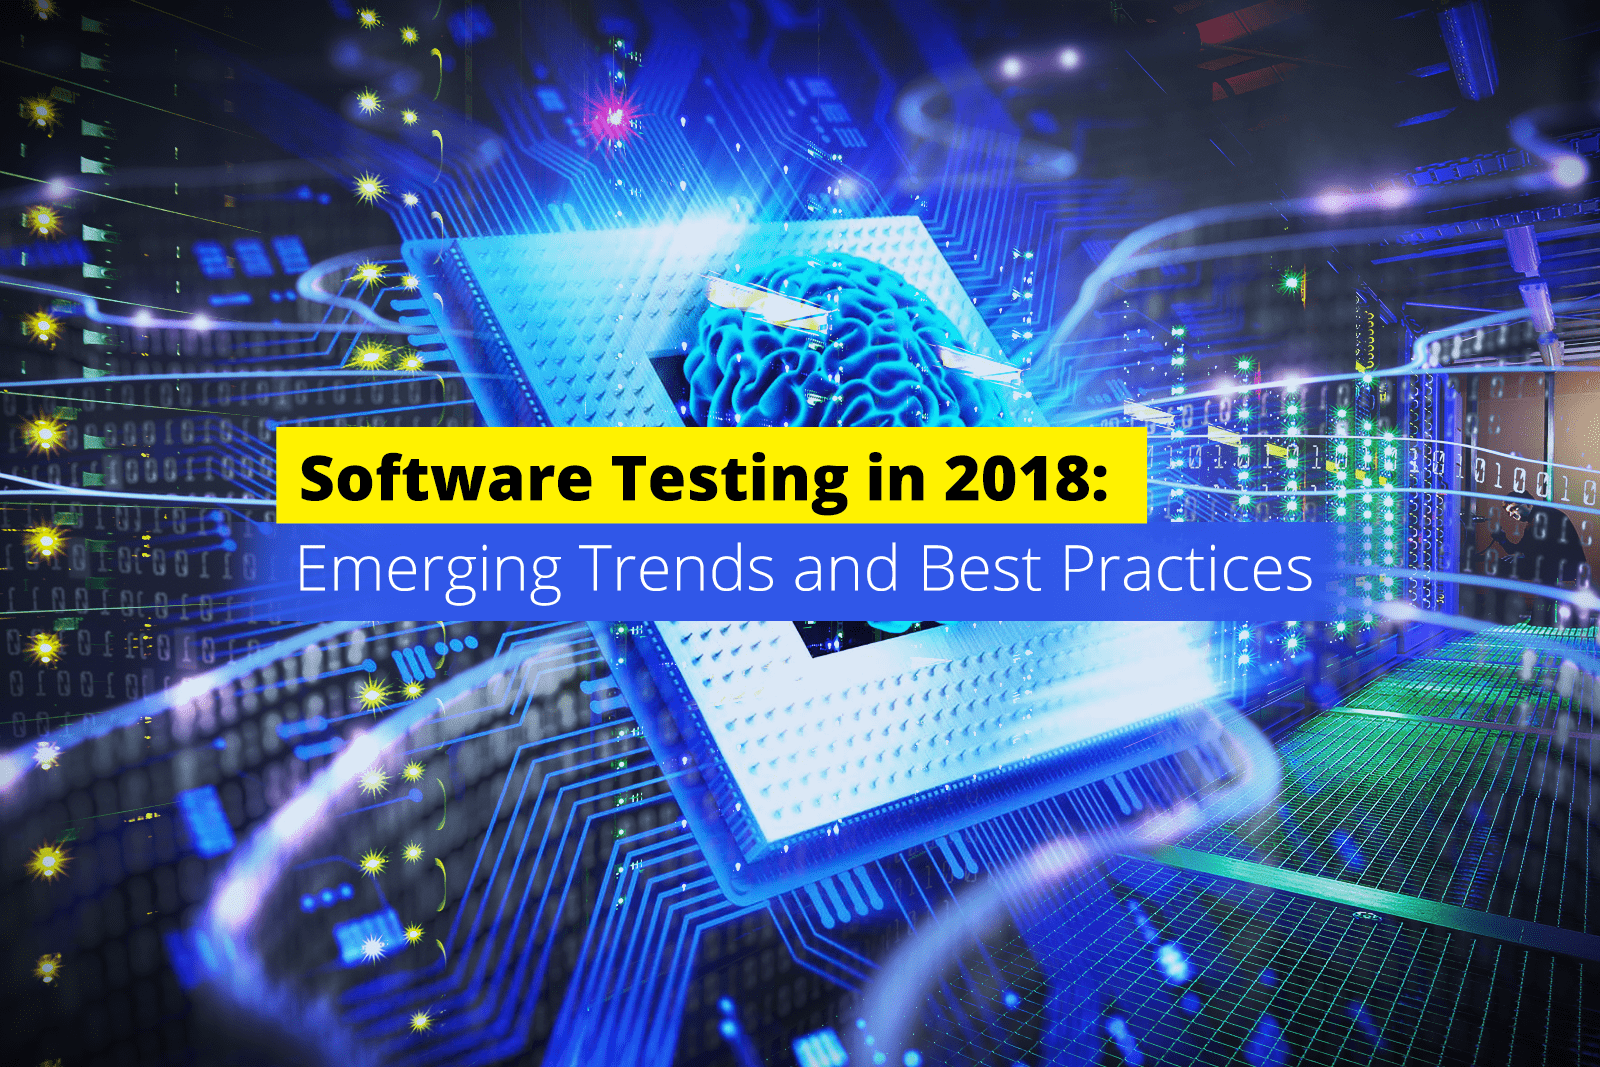 Software Testing in 2018 Emerging Trends